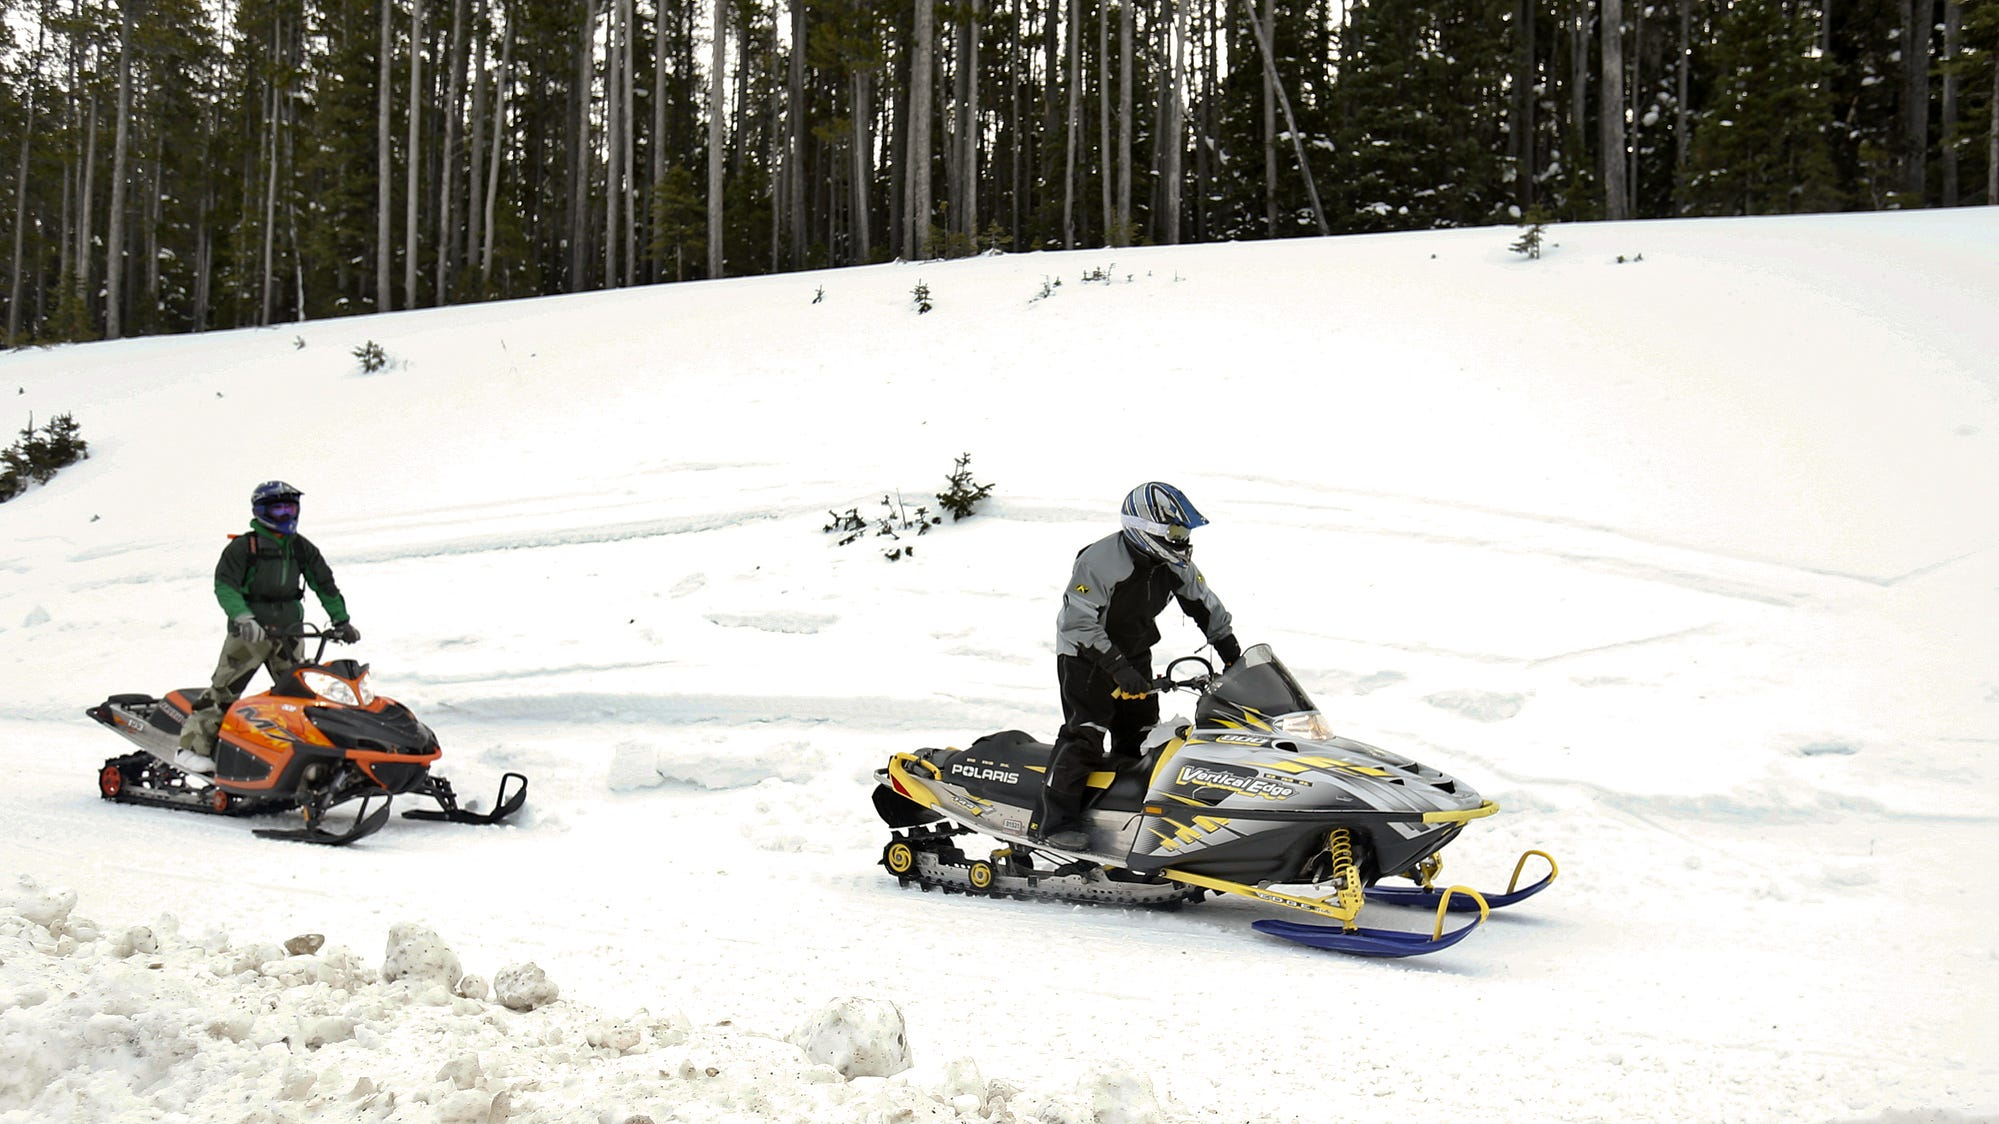 Snowmobilers take advantage of new snow in the Little Belt Mountains.